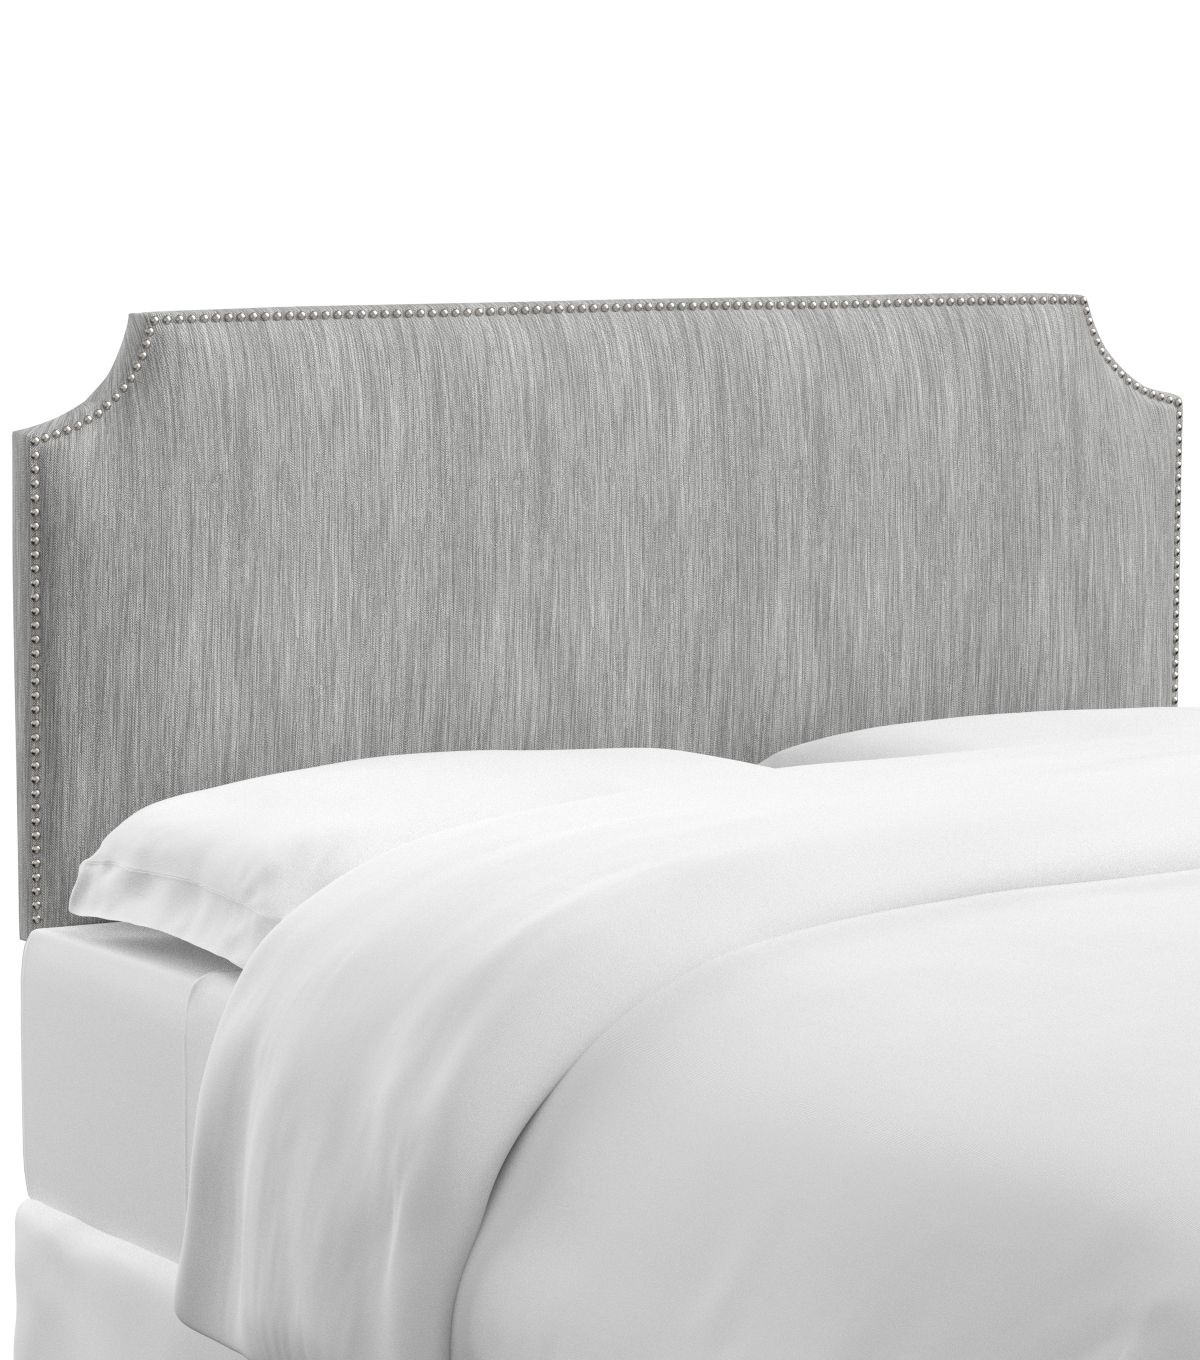 Skyline Furniture Notched Nail Button Headboard-Full